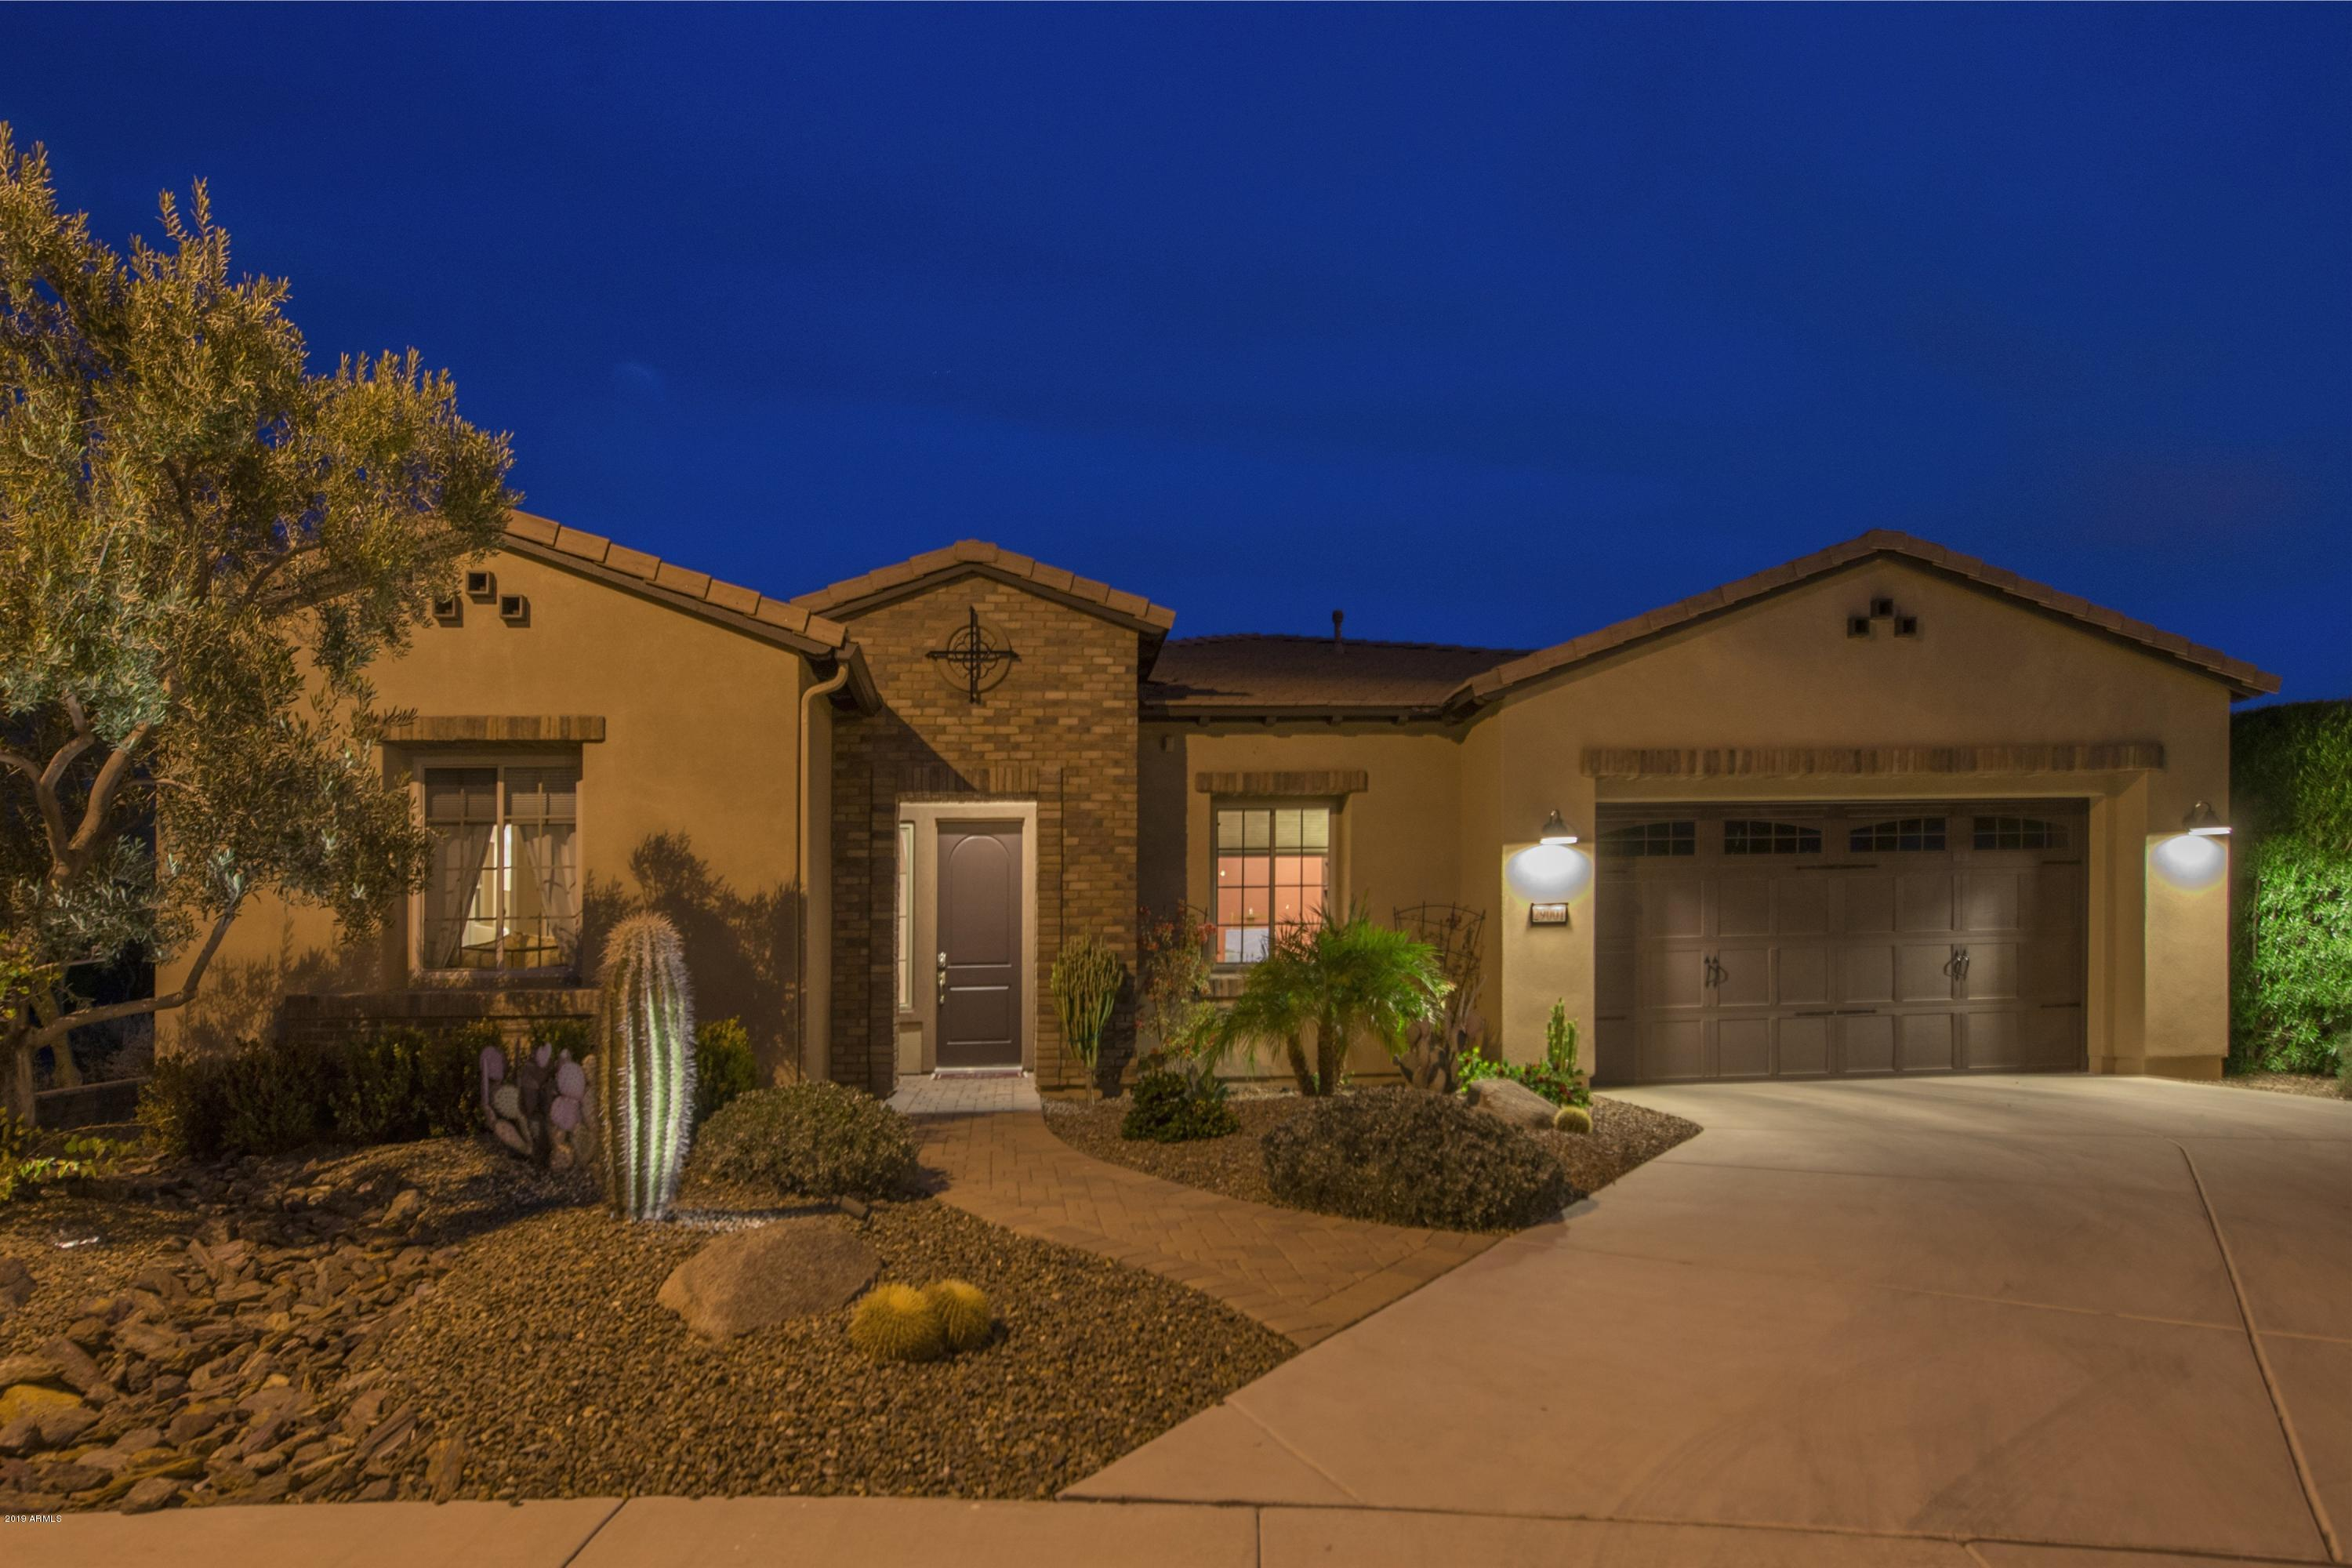 29001 N 129TH Avenue, Peoria, Arizona